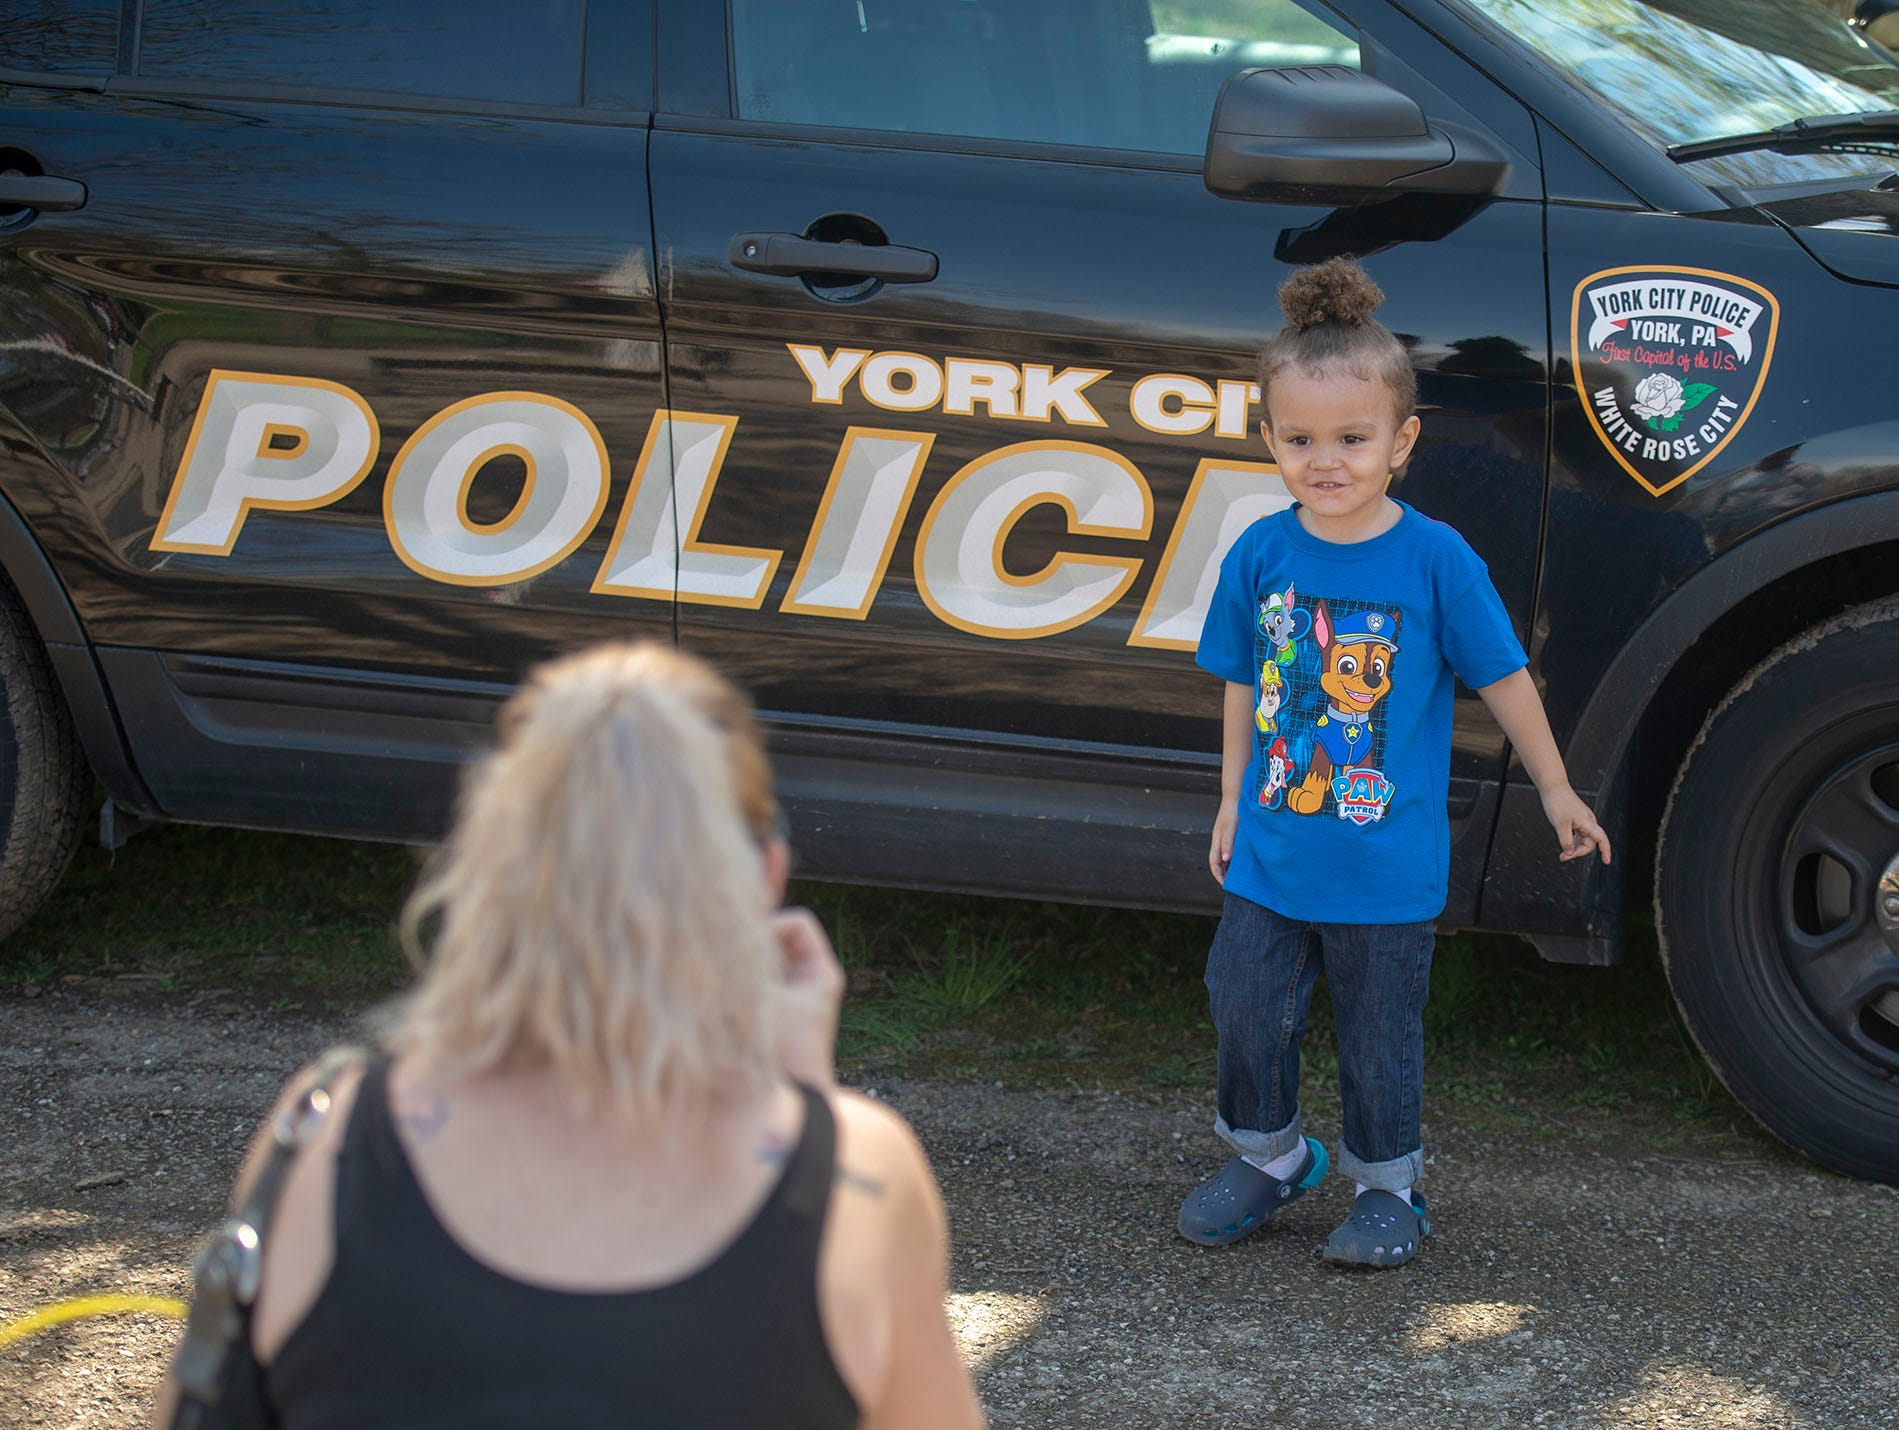 Saturday's Easter egg hunt at Kiwanis Lake was the perfect chance to get a photo taken with a York City Police car.